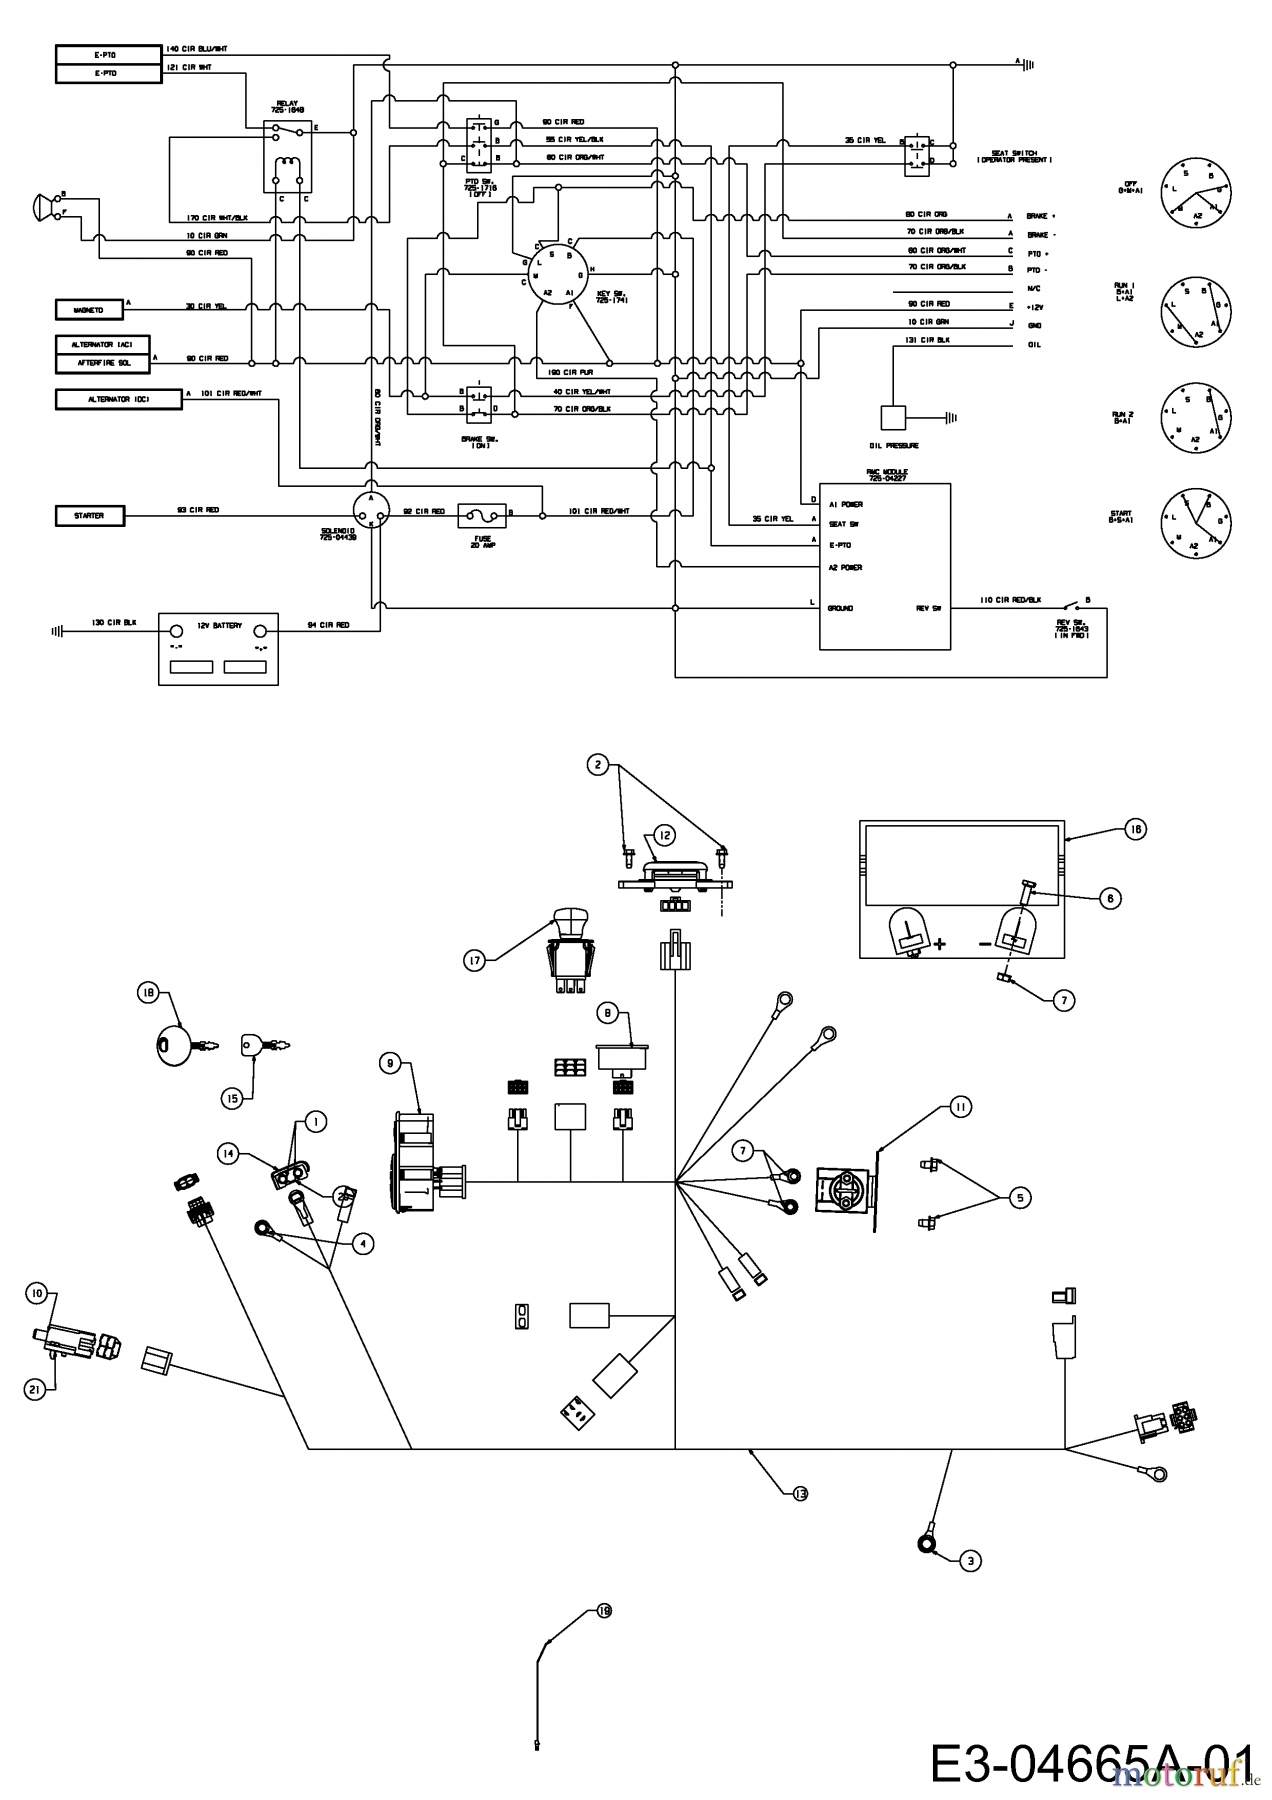 Manow06201101 Ns2 Name Cub Schematic Cadet Rzt42electrical